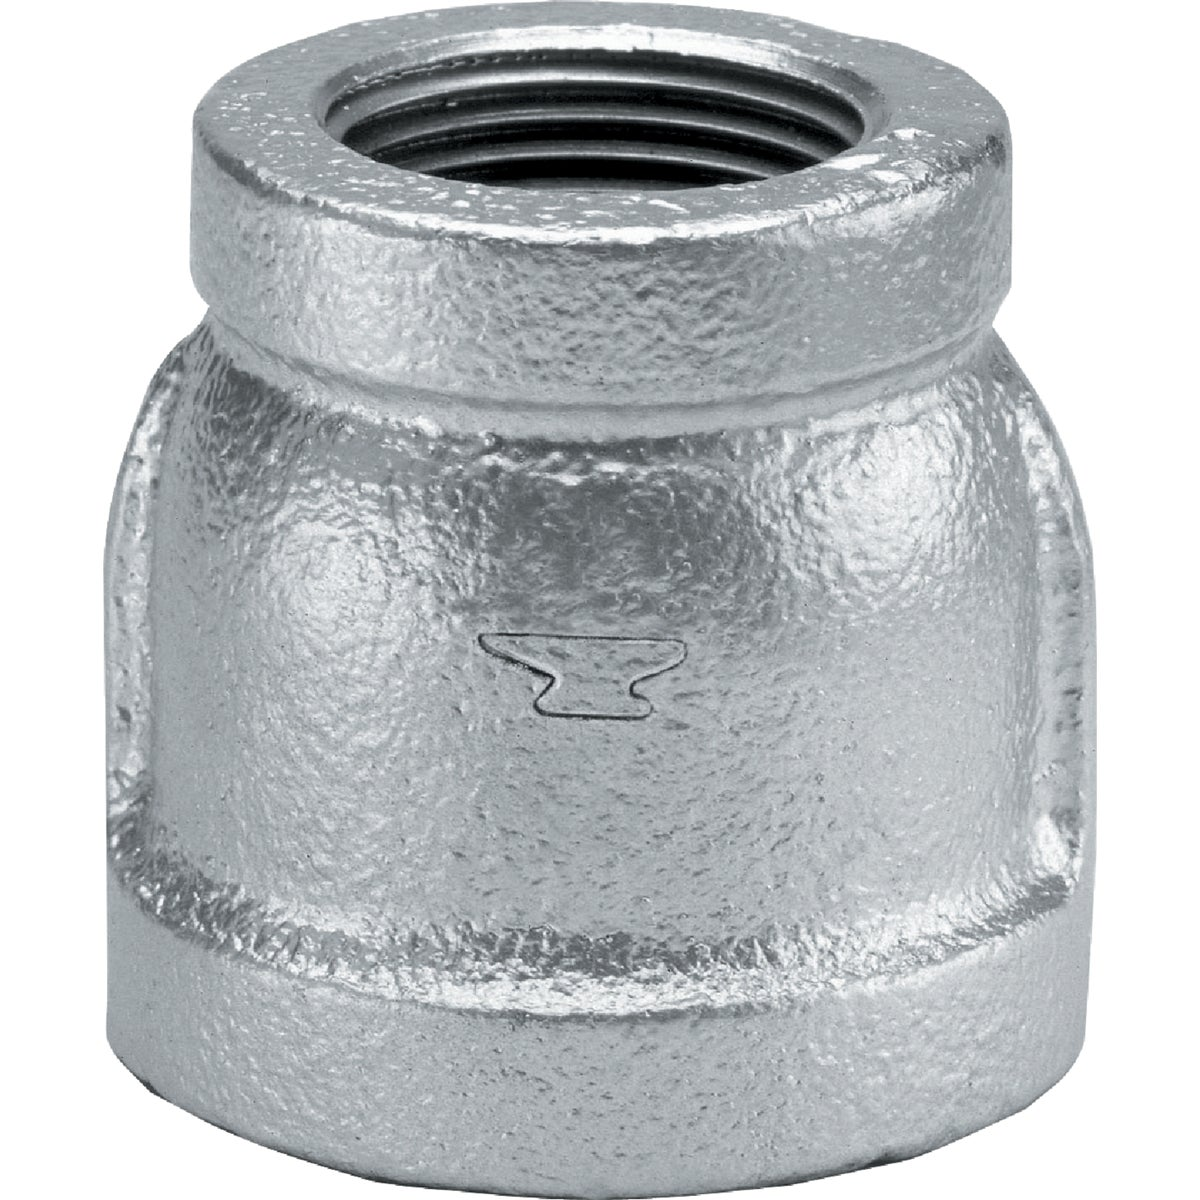 3/4X1/2 GALV COUPLING